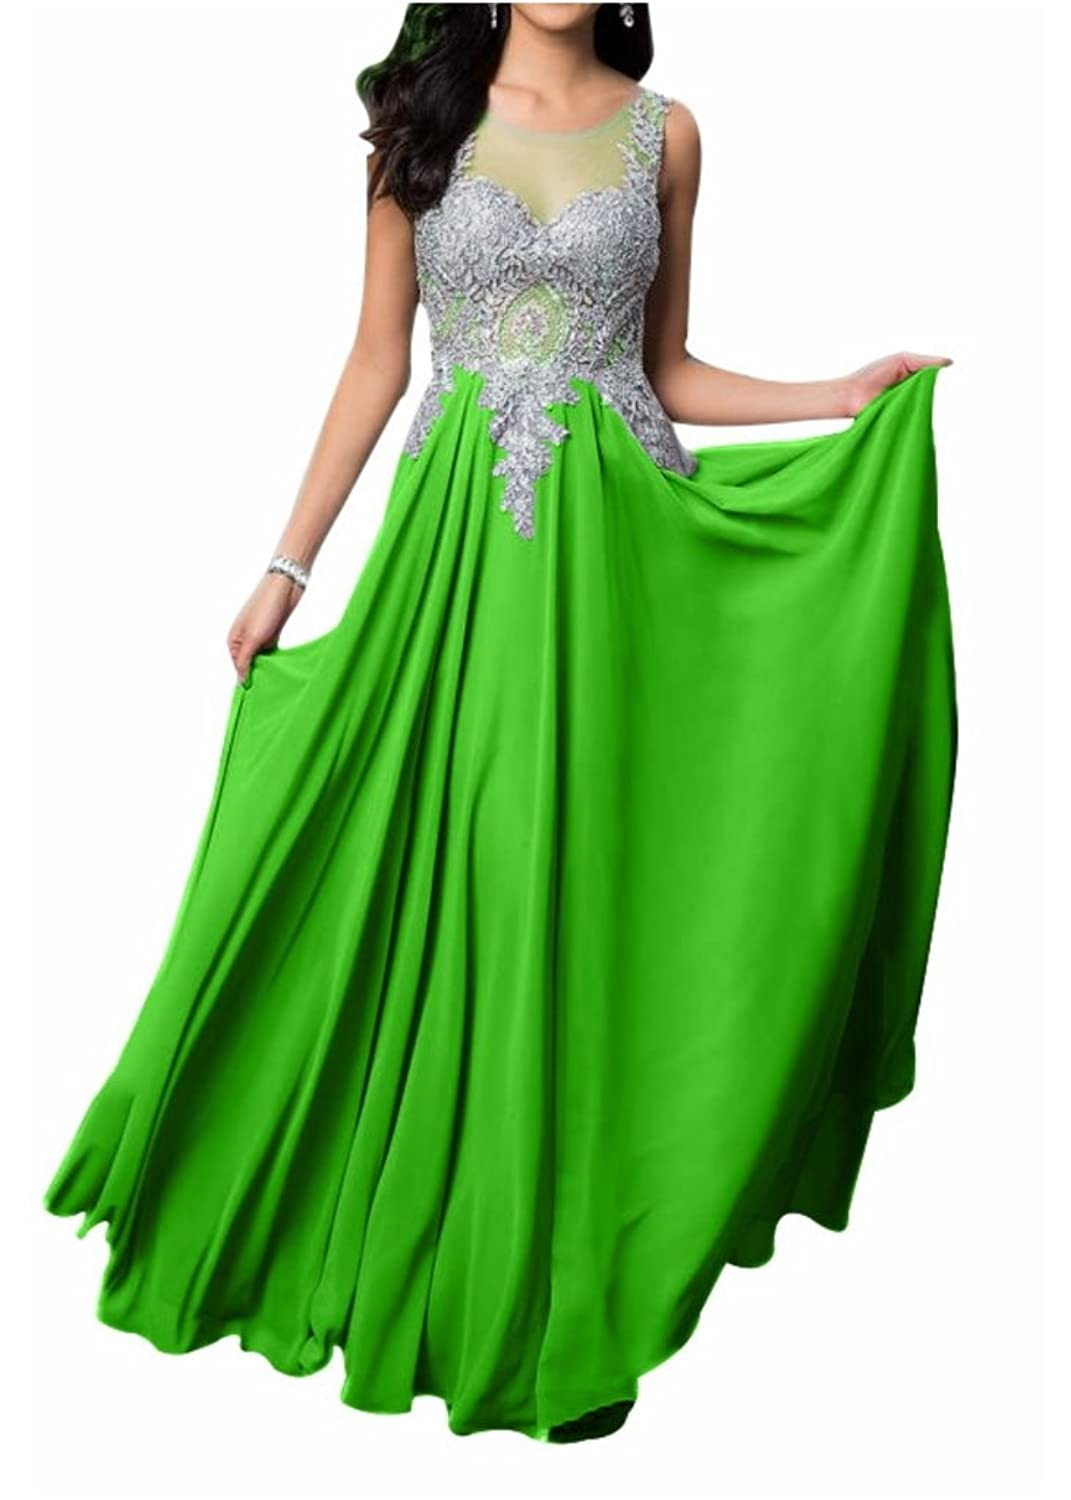 Charm Bridal Chiffon Long Women Summer Evening Wedding Party Dress with Applique